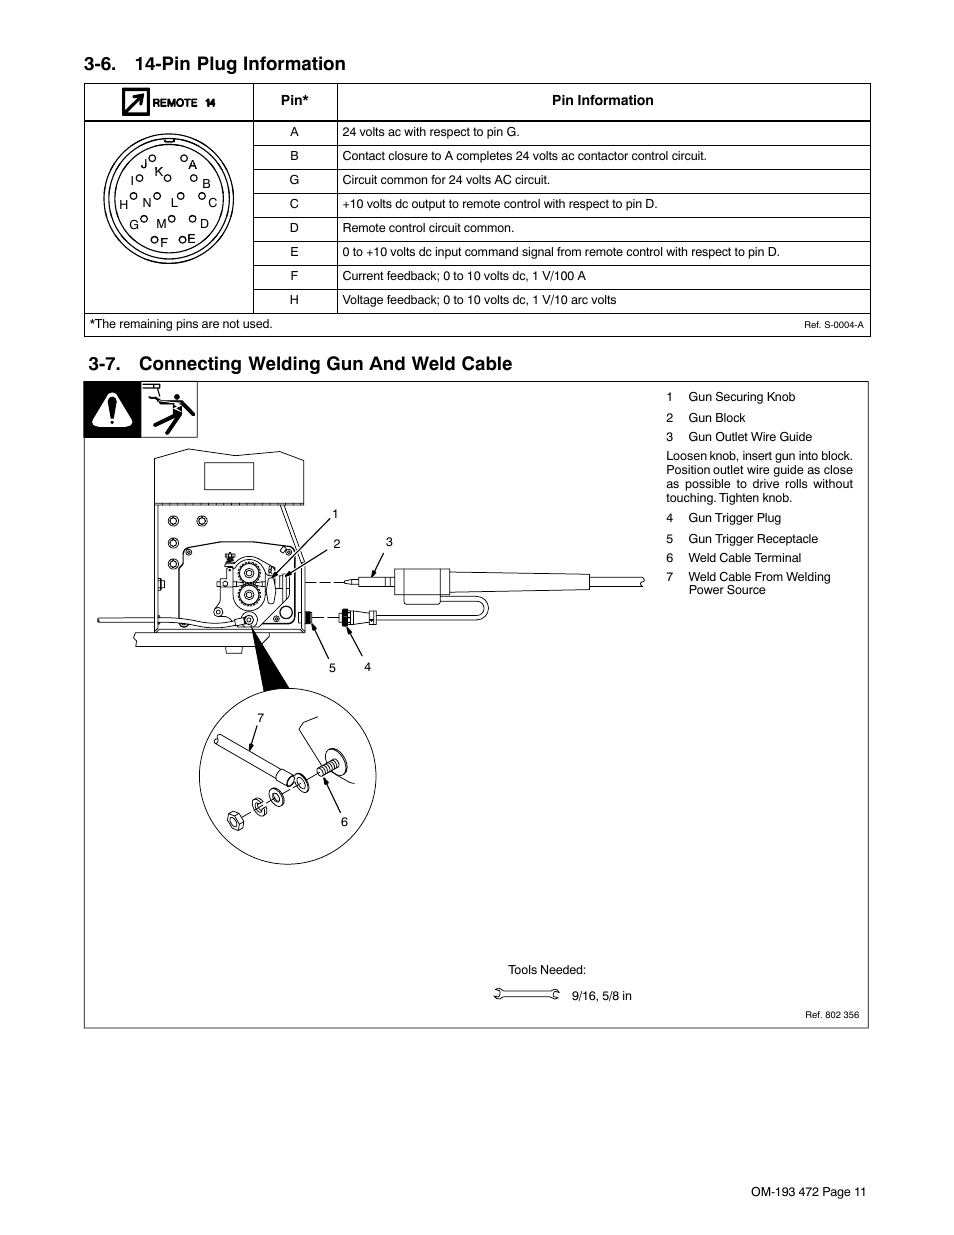 6 14 Pin Plug Information 7 Connecting Welding Gun And Weld Cable Block Diagram Miller Electric 22a User Manual Page 15 32